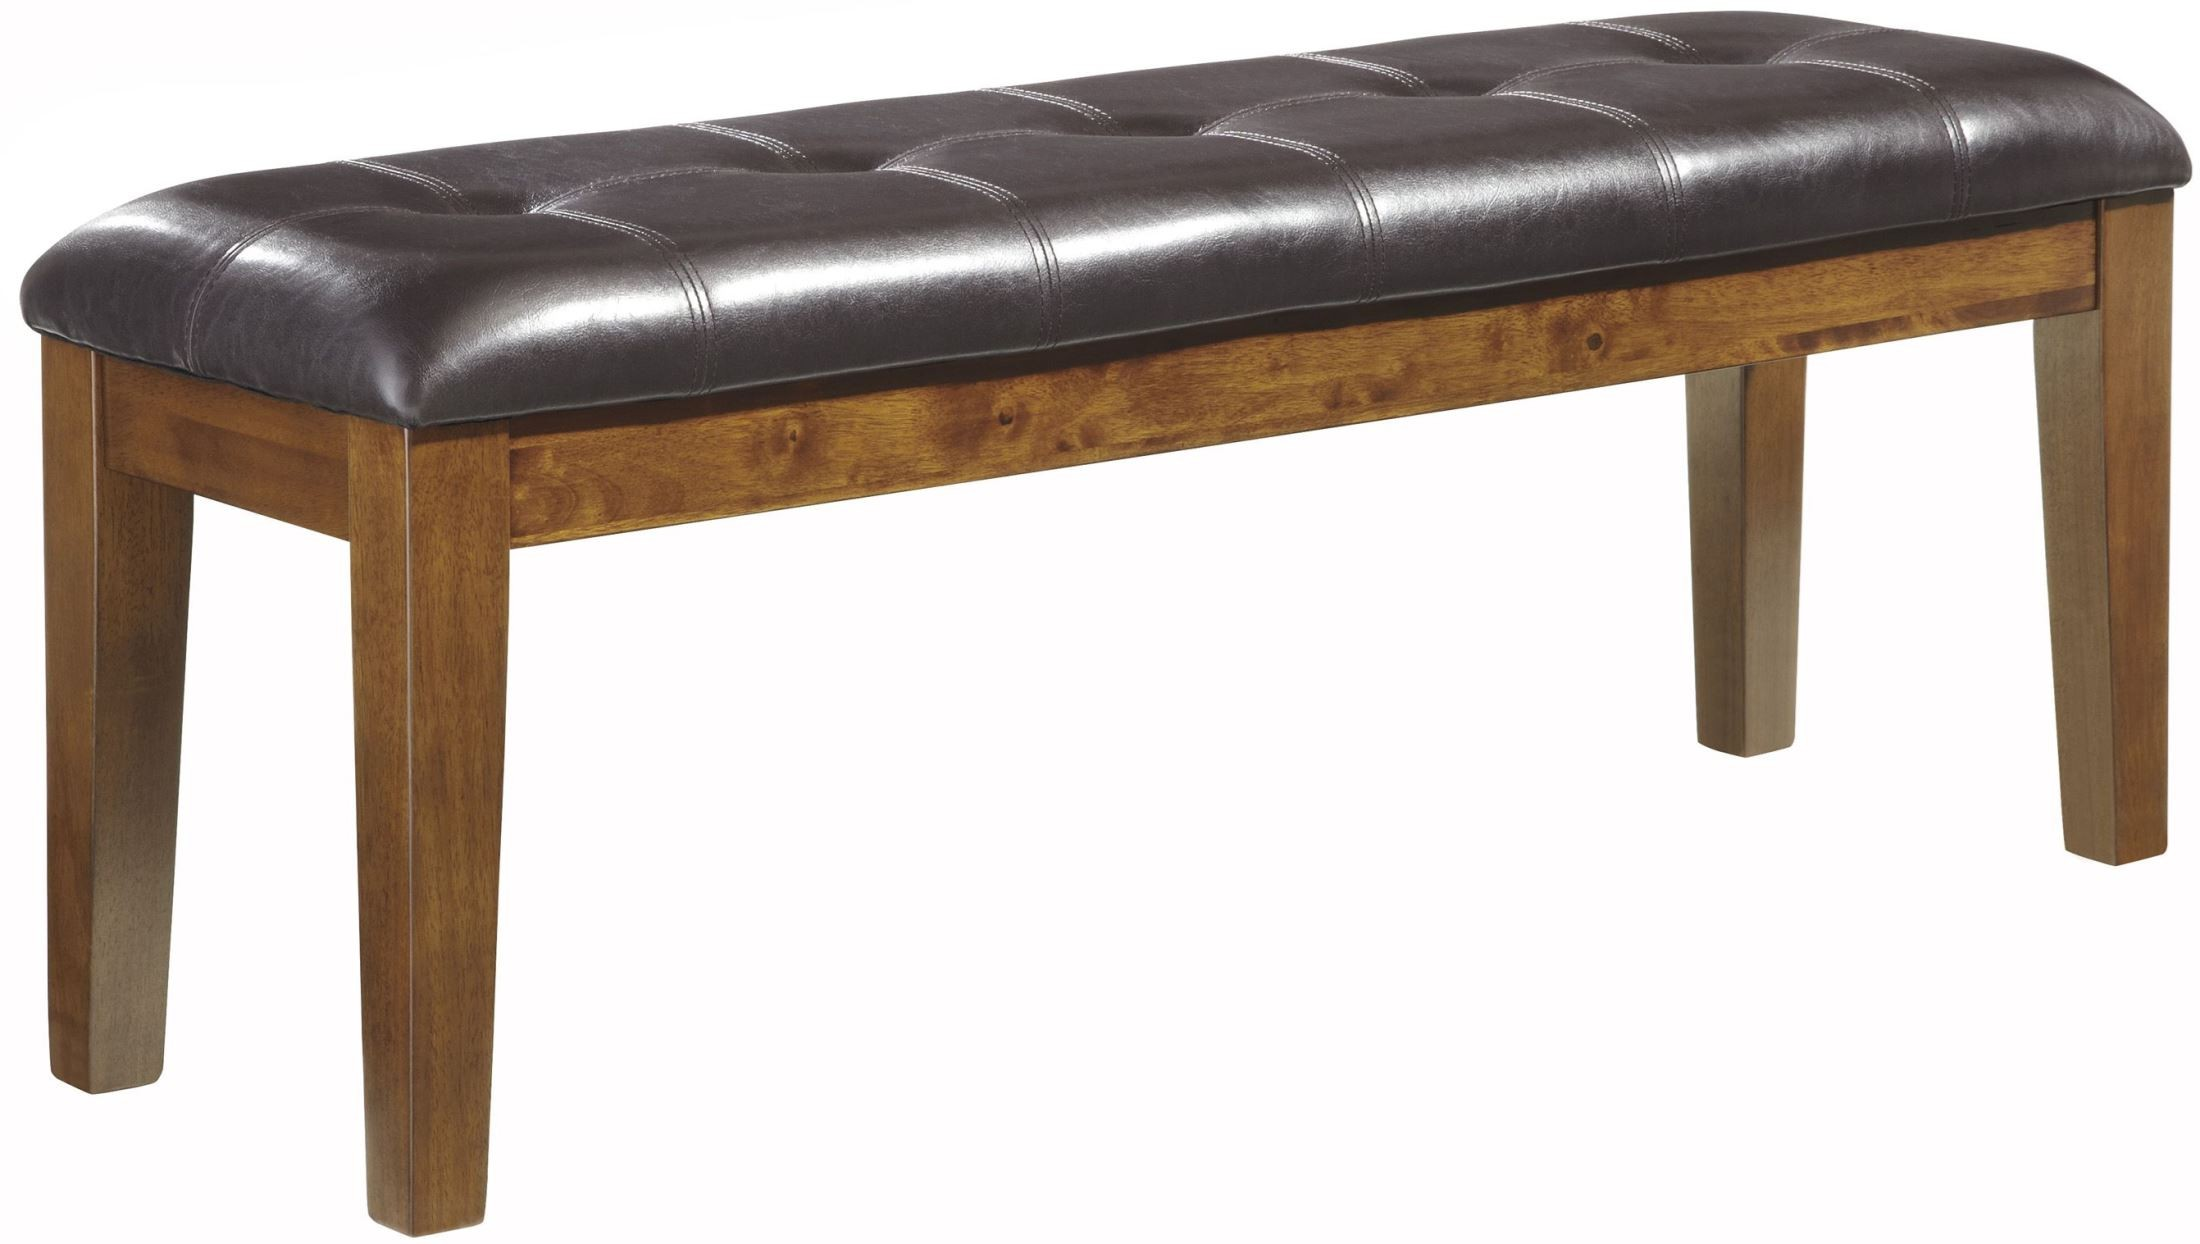 Ralene Large Upholstered Dining Room Bench From Ashley D594 00 Coleman Furniture